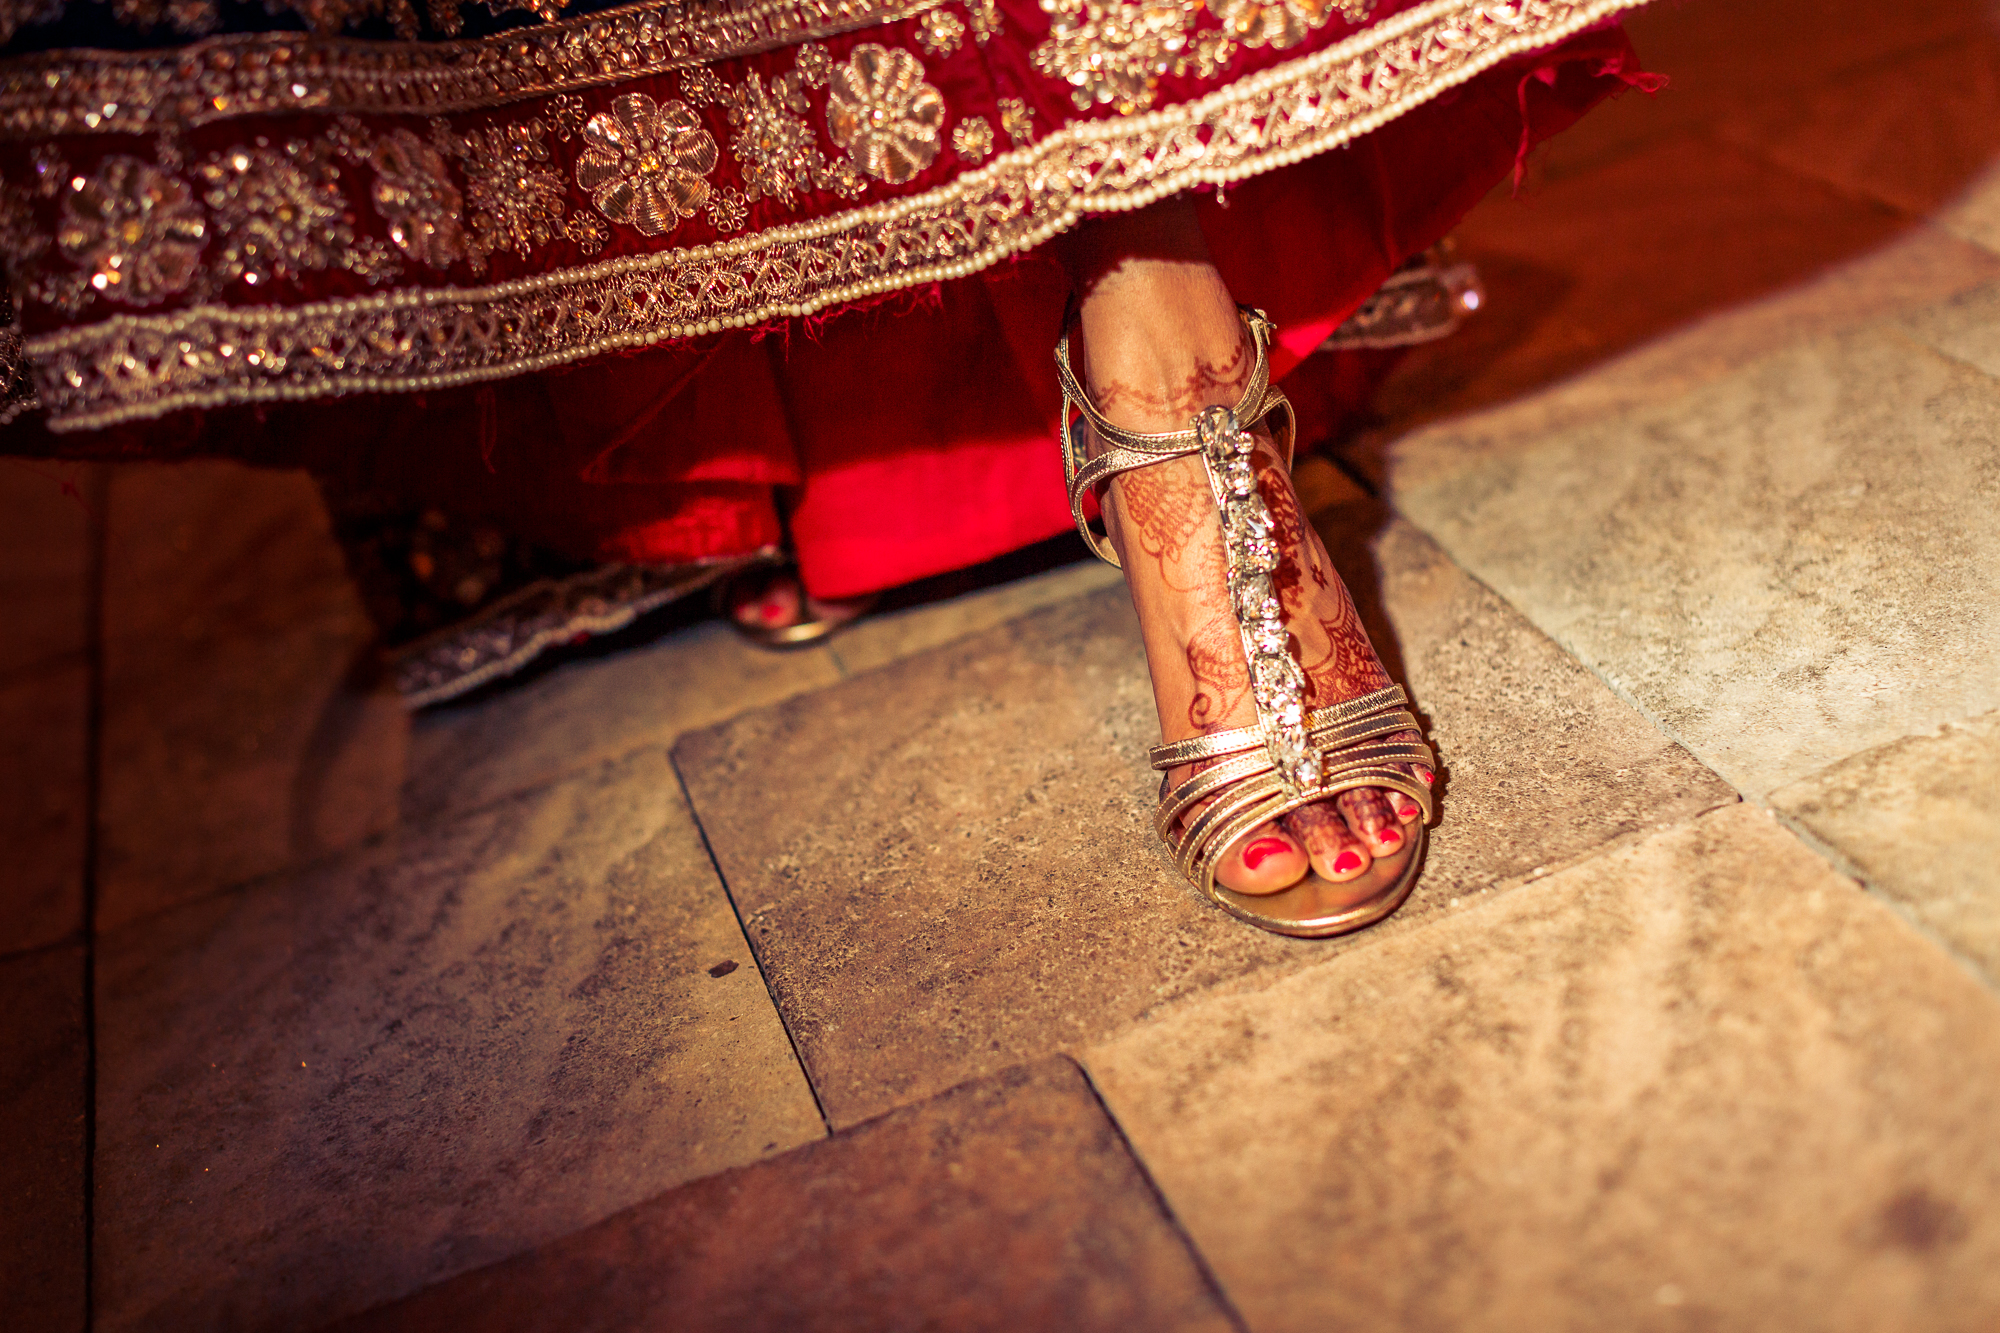 scranton-wedding-photography-zak-zavada-2015.08-rituDoug-1007.jpg